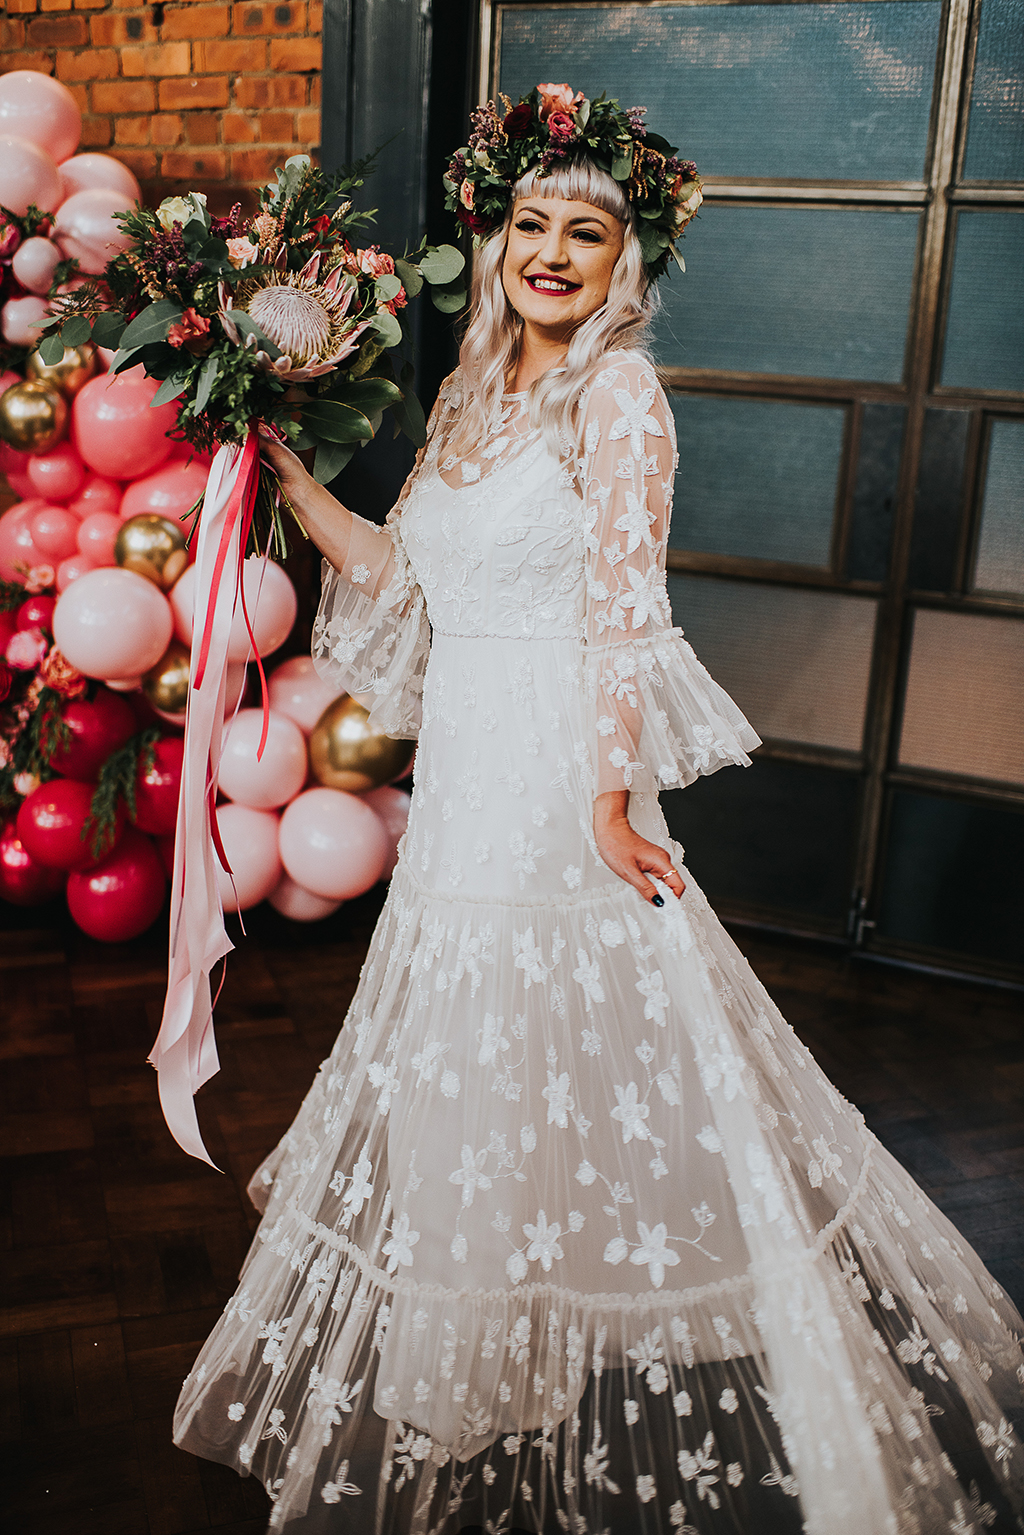 The bride was wearing a lace applique A line wedding dress with an illusion neckline and bell sleeves